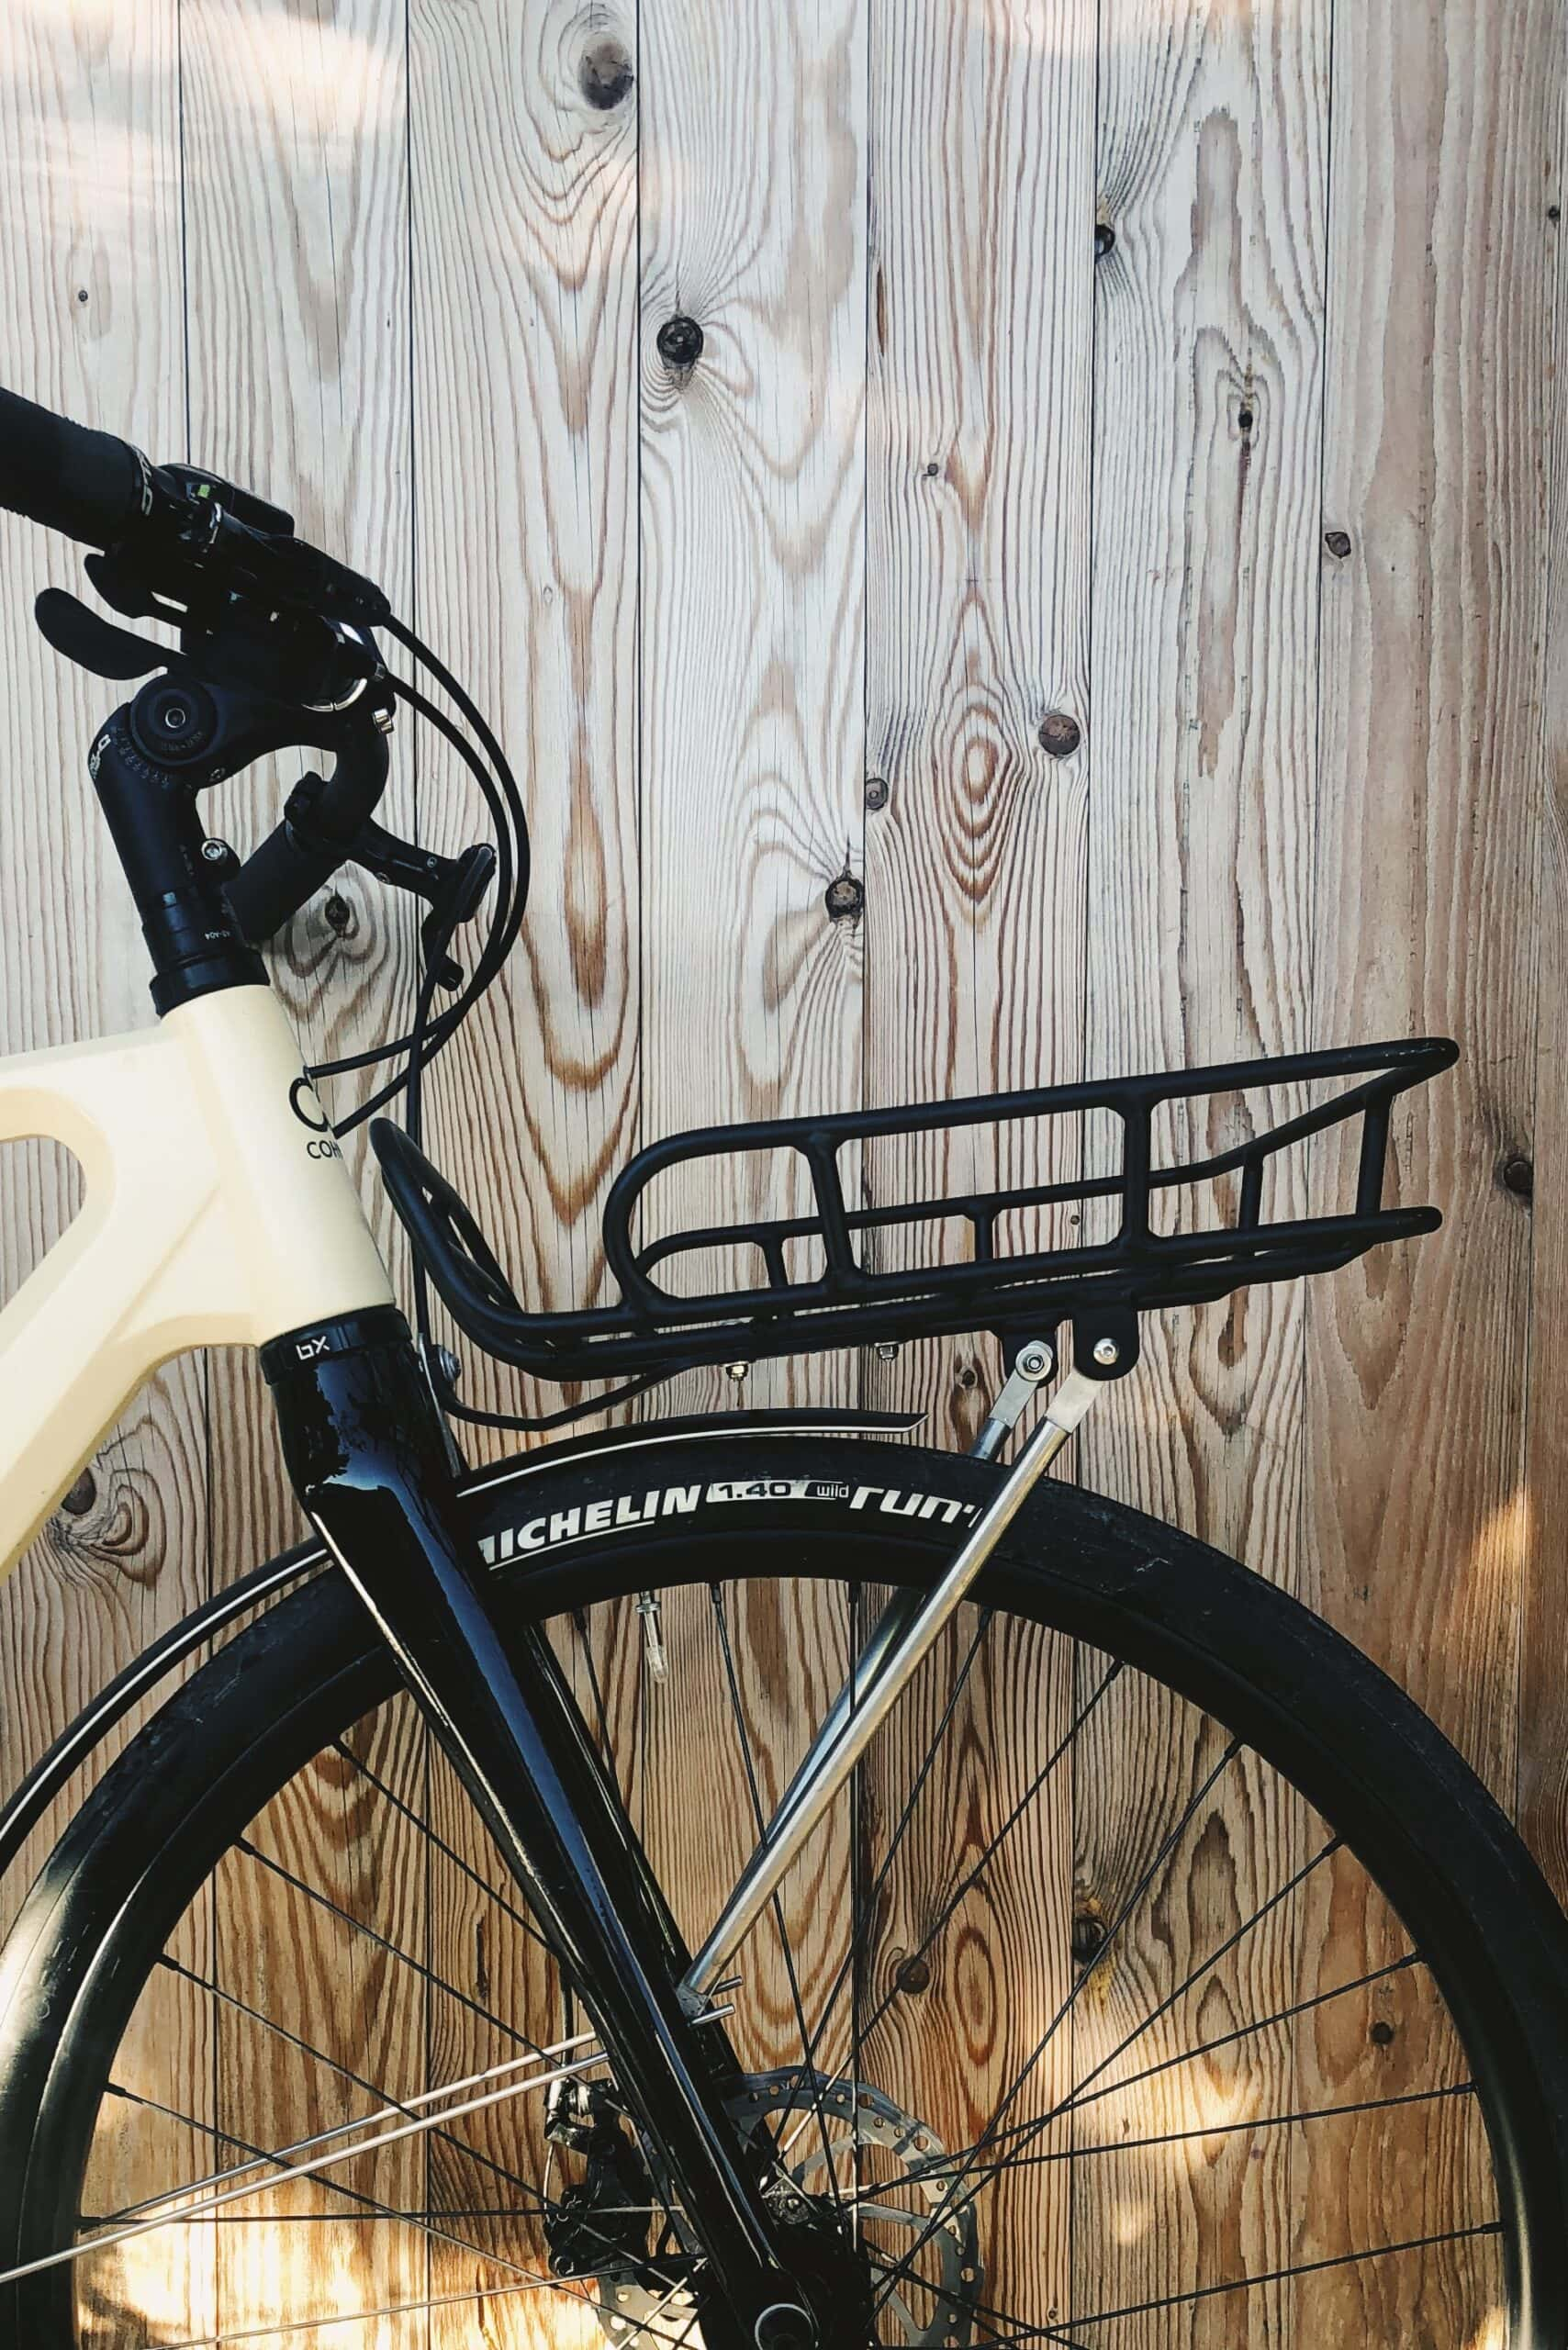 Bicycle front rack